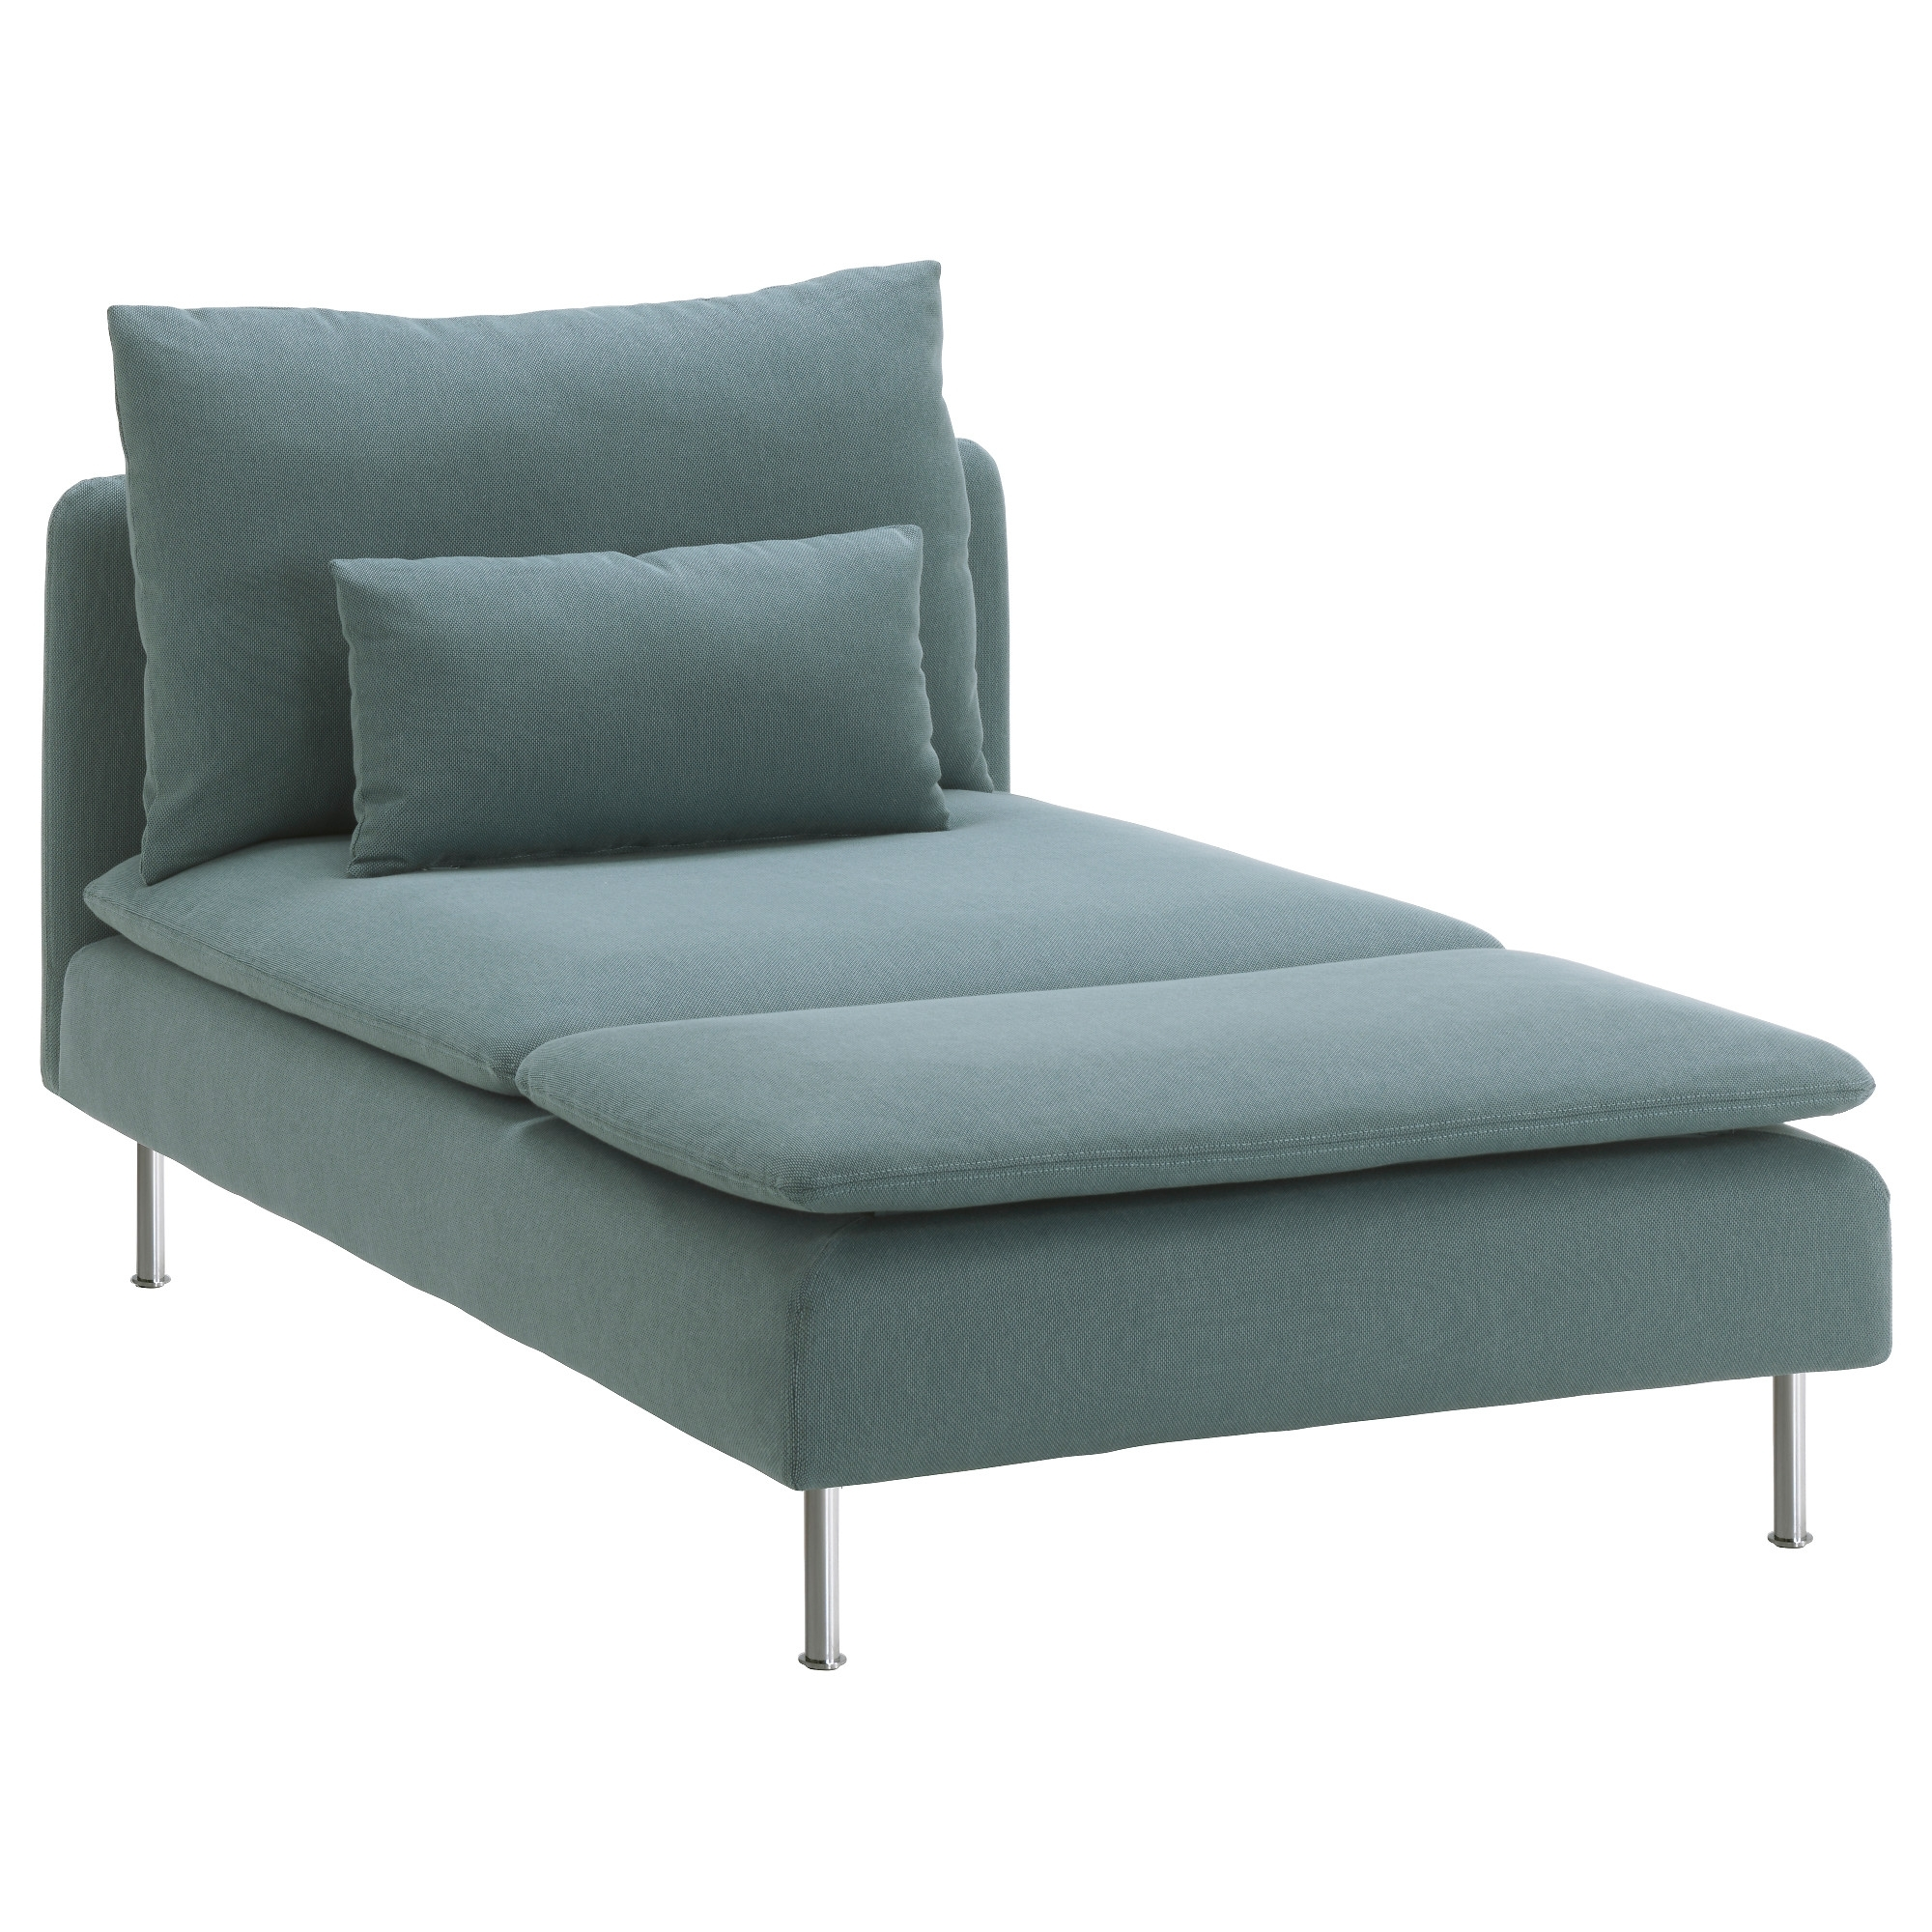 Söderhamn Chaise – Samsta Dark Gray – Ikea With Regard To Most Recently Released Ikea Chaise Longues (View 13 of 15)